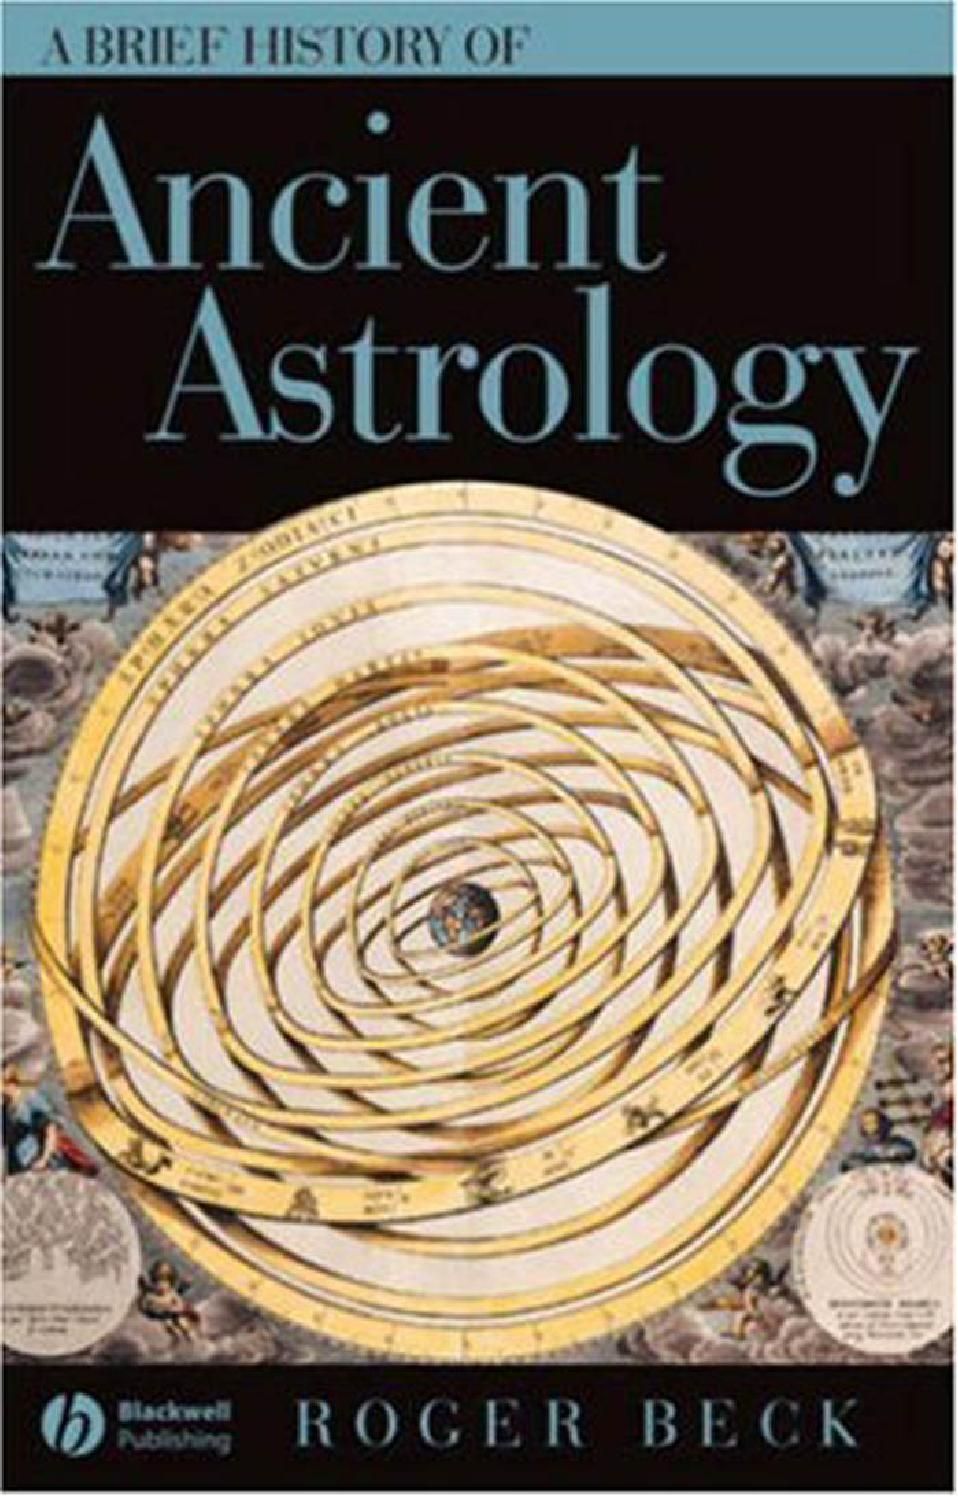 bba6ee2c7e9f A brief history of ancient astrology by samten wangchuk - issuu